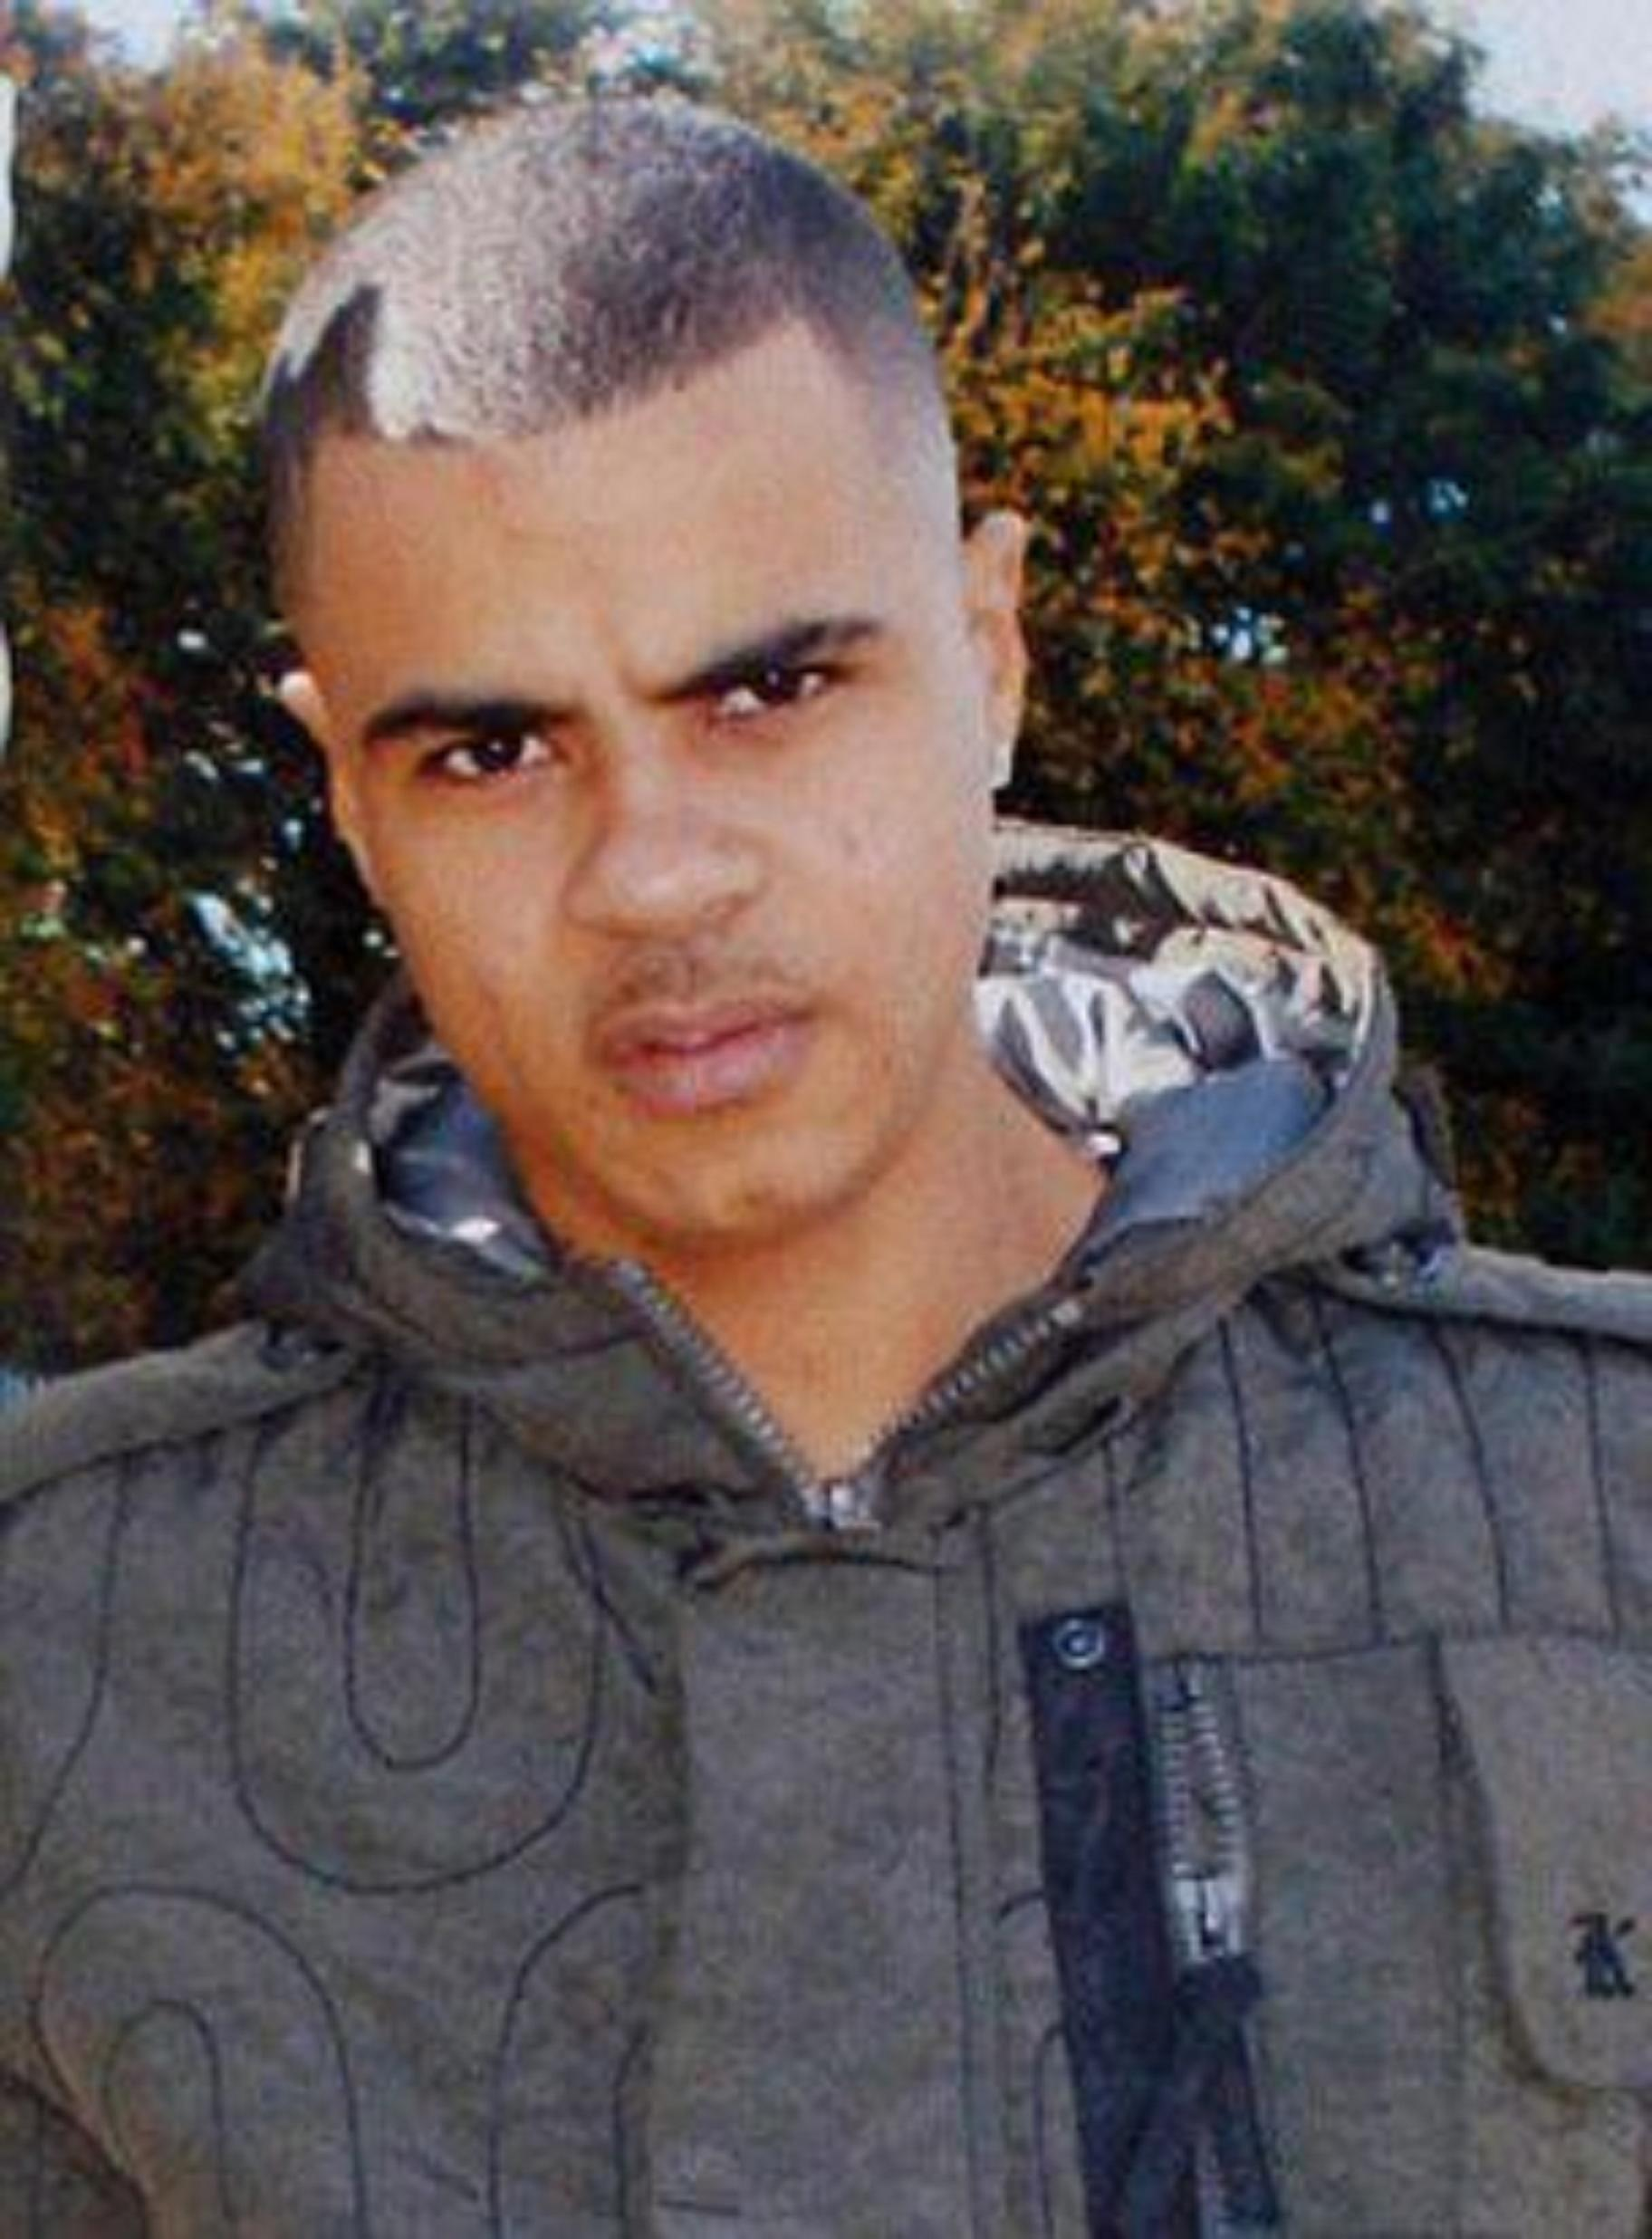 More than 500 people are expected to attend a vigil to celebrate the life of Mark Duggan this afternoon.